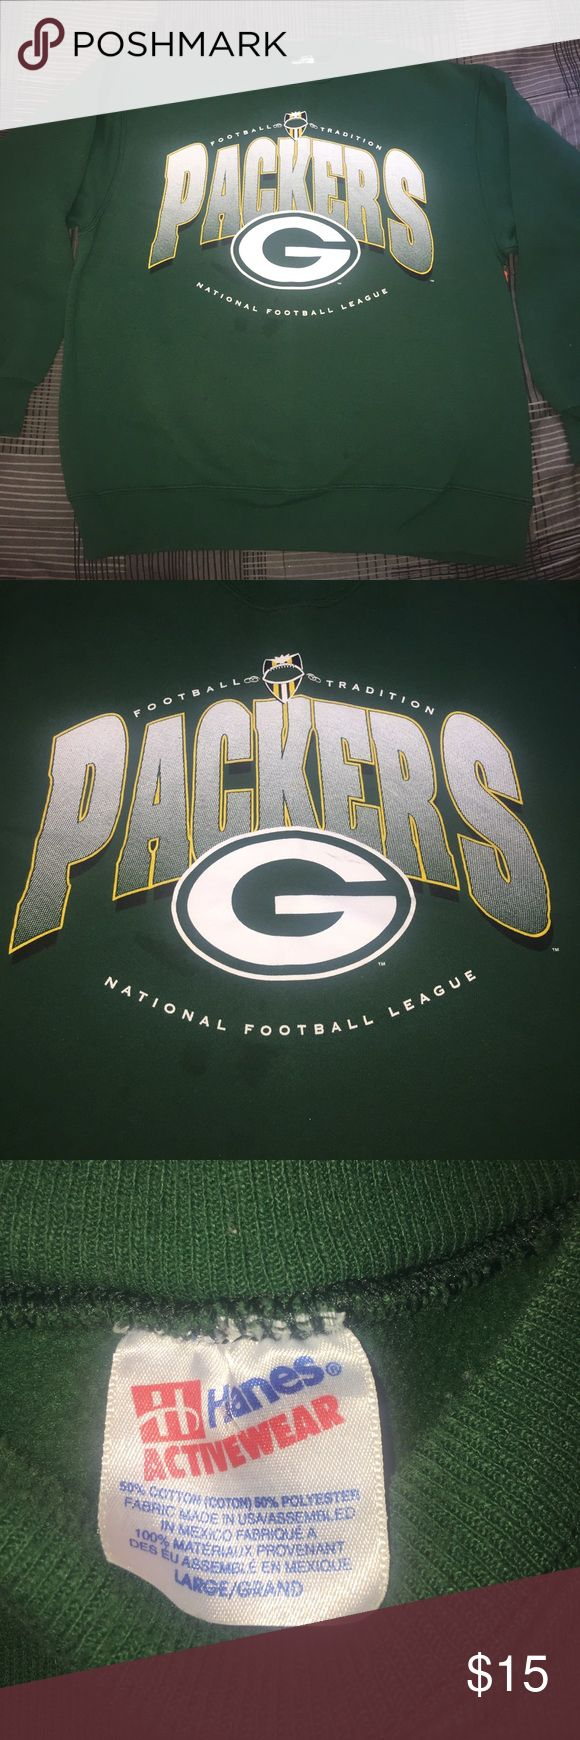 """Green Bay Packers Sweatshirt Great for any NFL fan. great condition with some blemishes and few stains that can probably be removed but still great overall. Measurements armpit to armpit 21 1/2""""inches. Top to bottom from front of collar 23 3/4"""" inches. Hanes Activewear Sweaters Crewneck"""